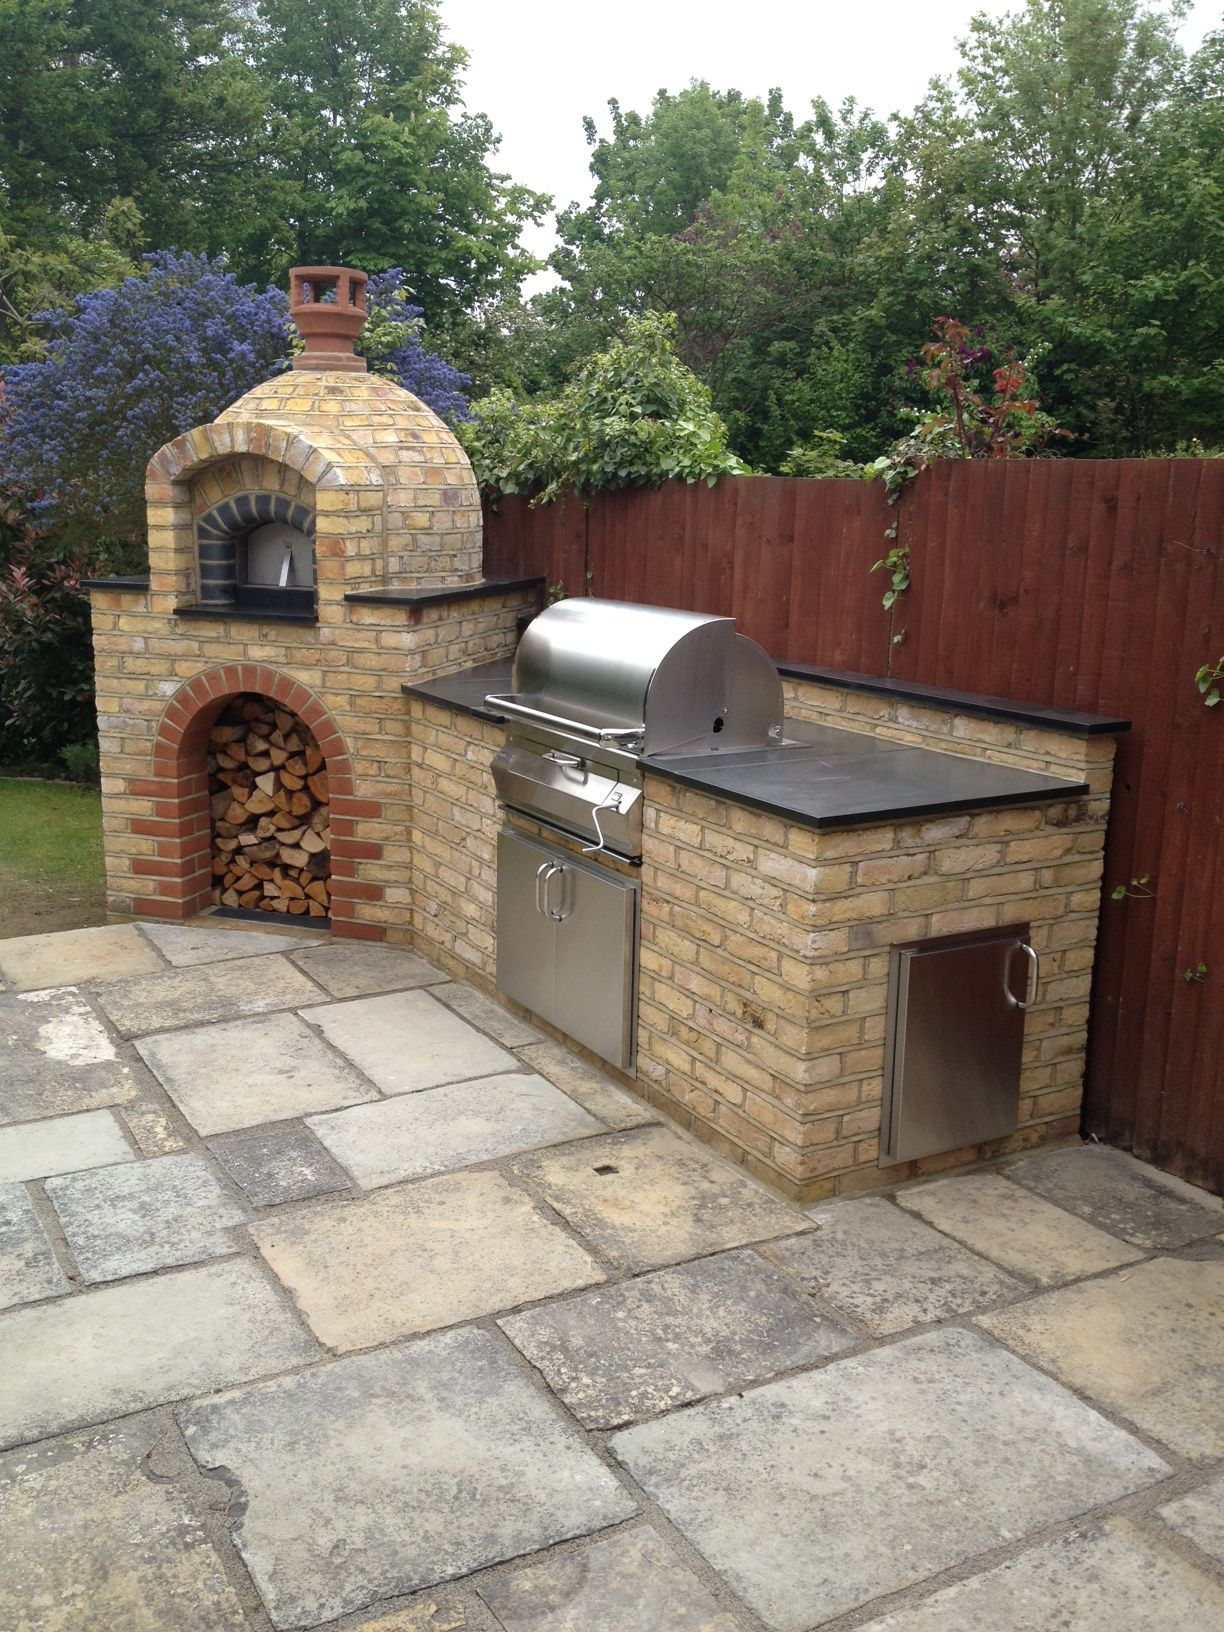 Primo 60 Wood Fired Pizza Oven By The Stone Bake Oven Company Diy Outdoor Kitchen Outdoor Cooking Area Outdoor Kitchen Design